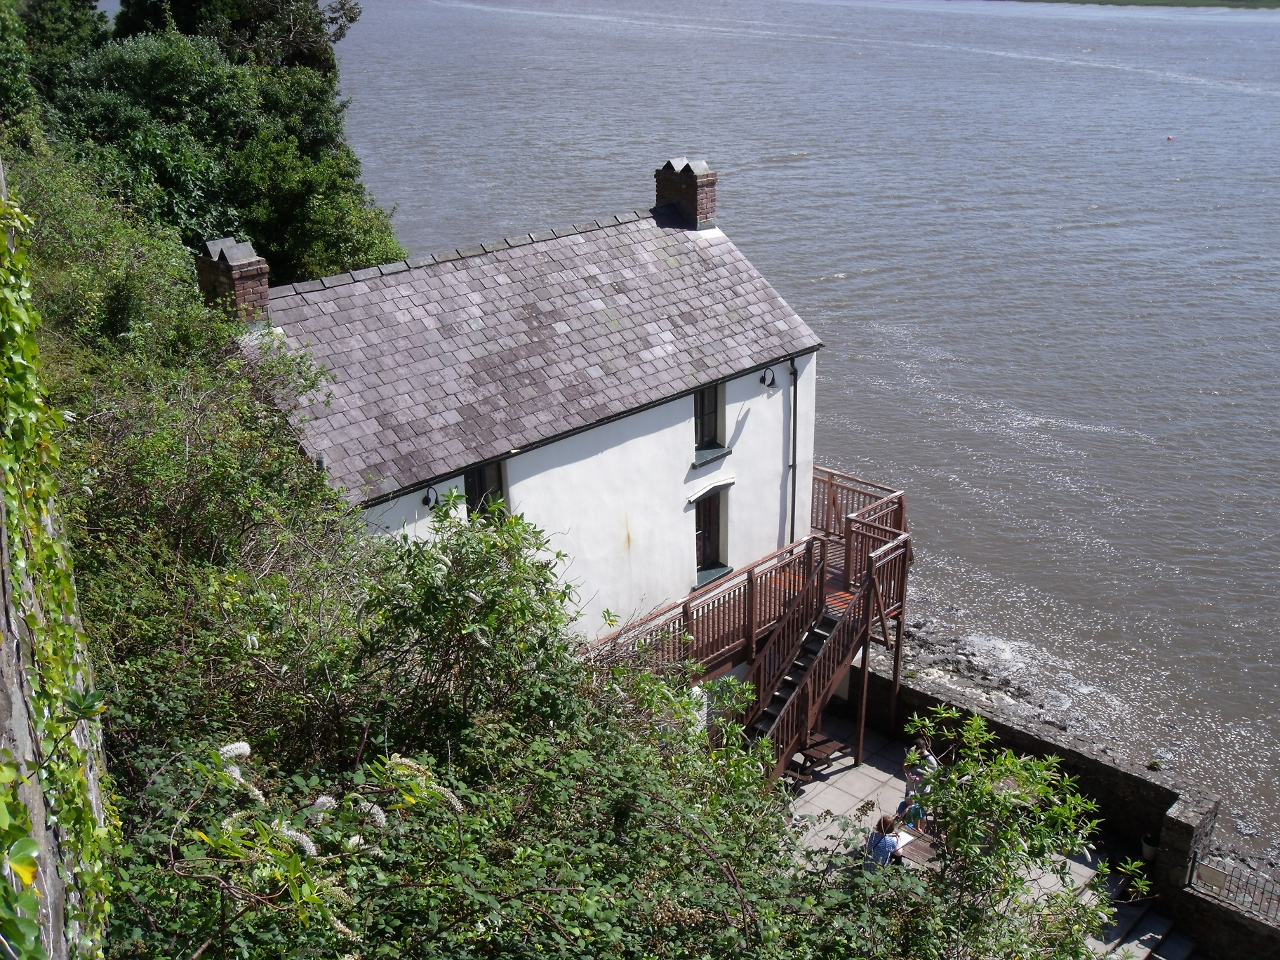 Dylan Thomas Boathouse Laugharne - things to do May Day Bank Holiday 2016 - motherdistracted.co.uk